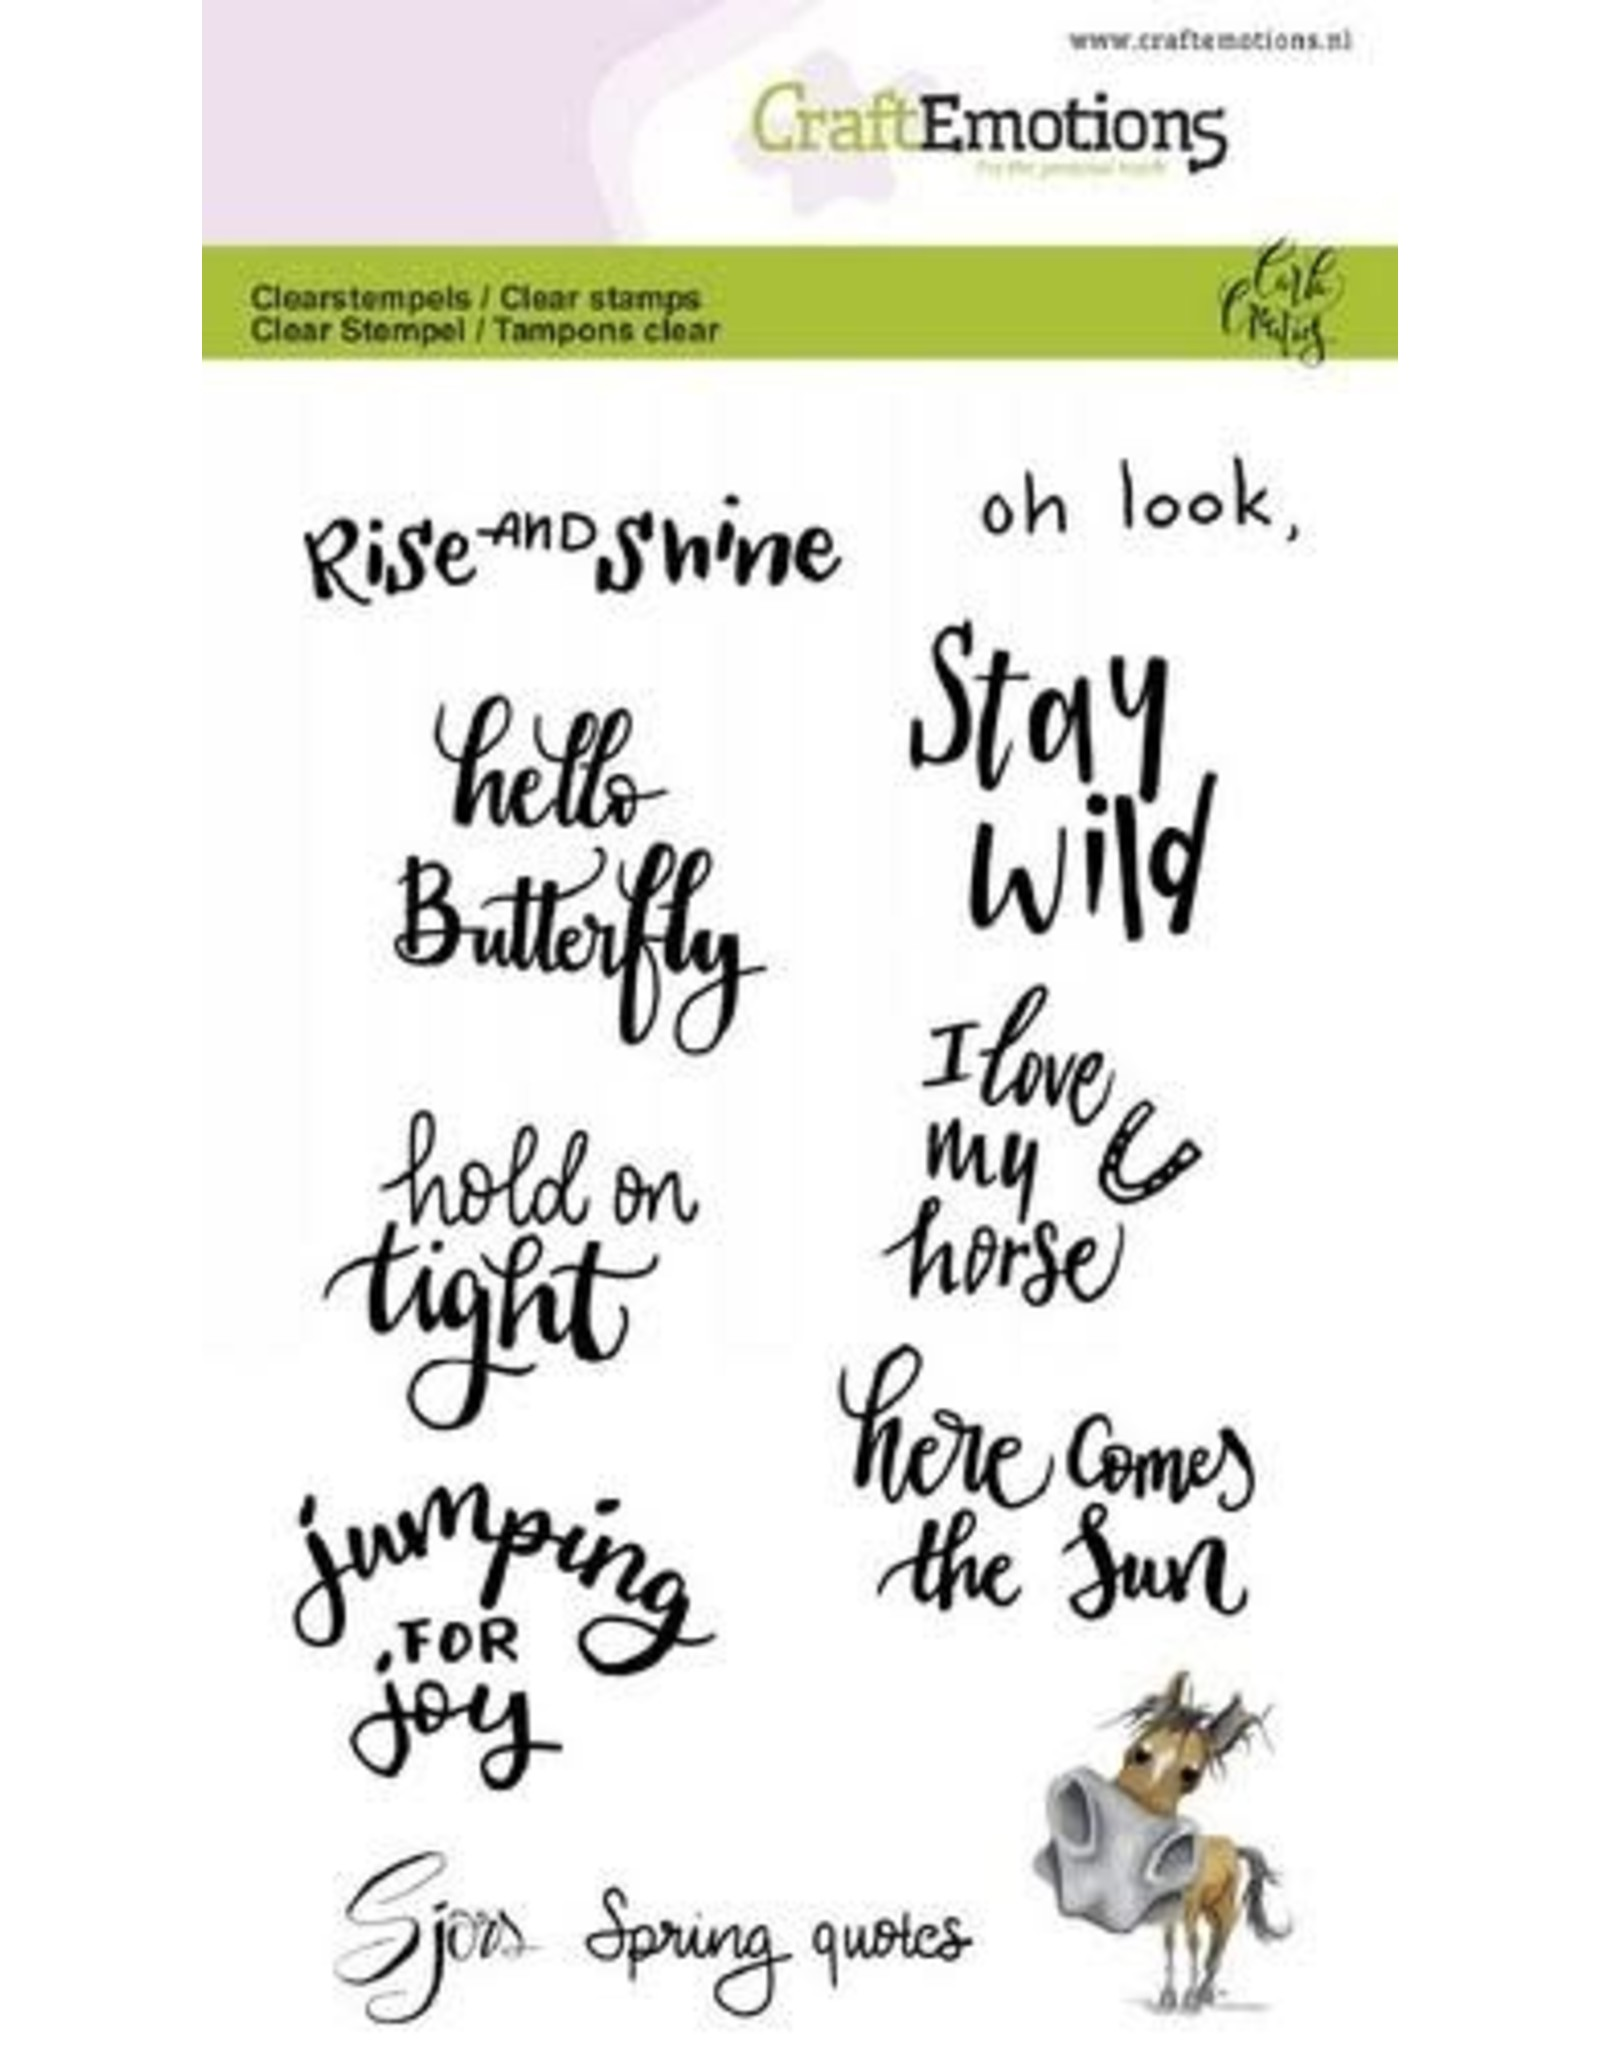 Craft Emotions CraftEmotions clearstamps A6 - Sjors Spring quotes (Eng) Carla Creaties